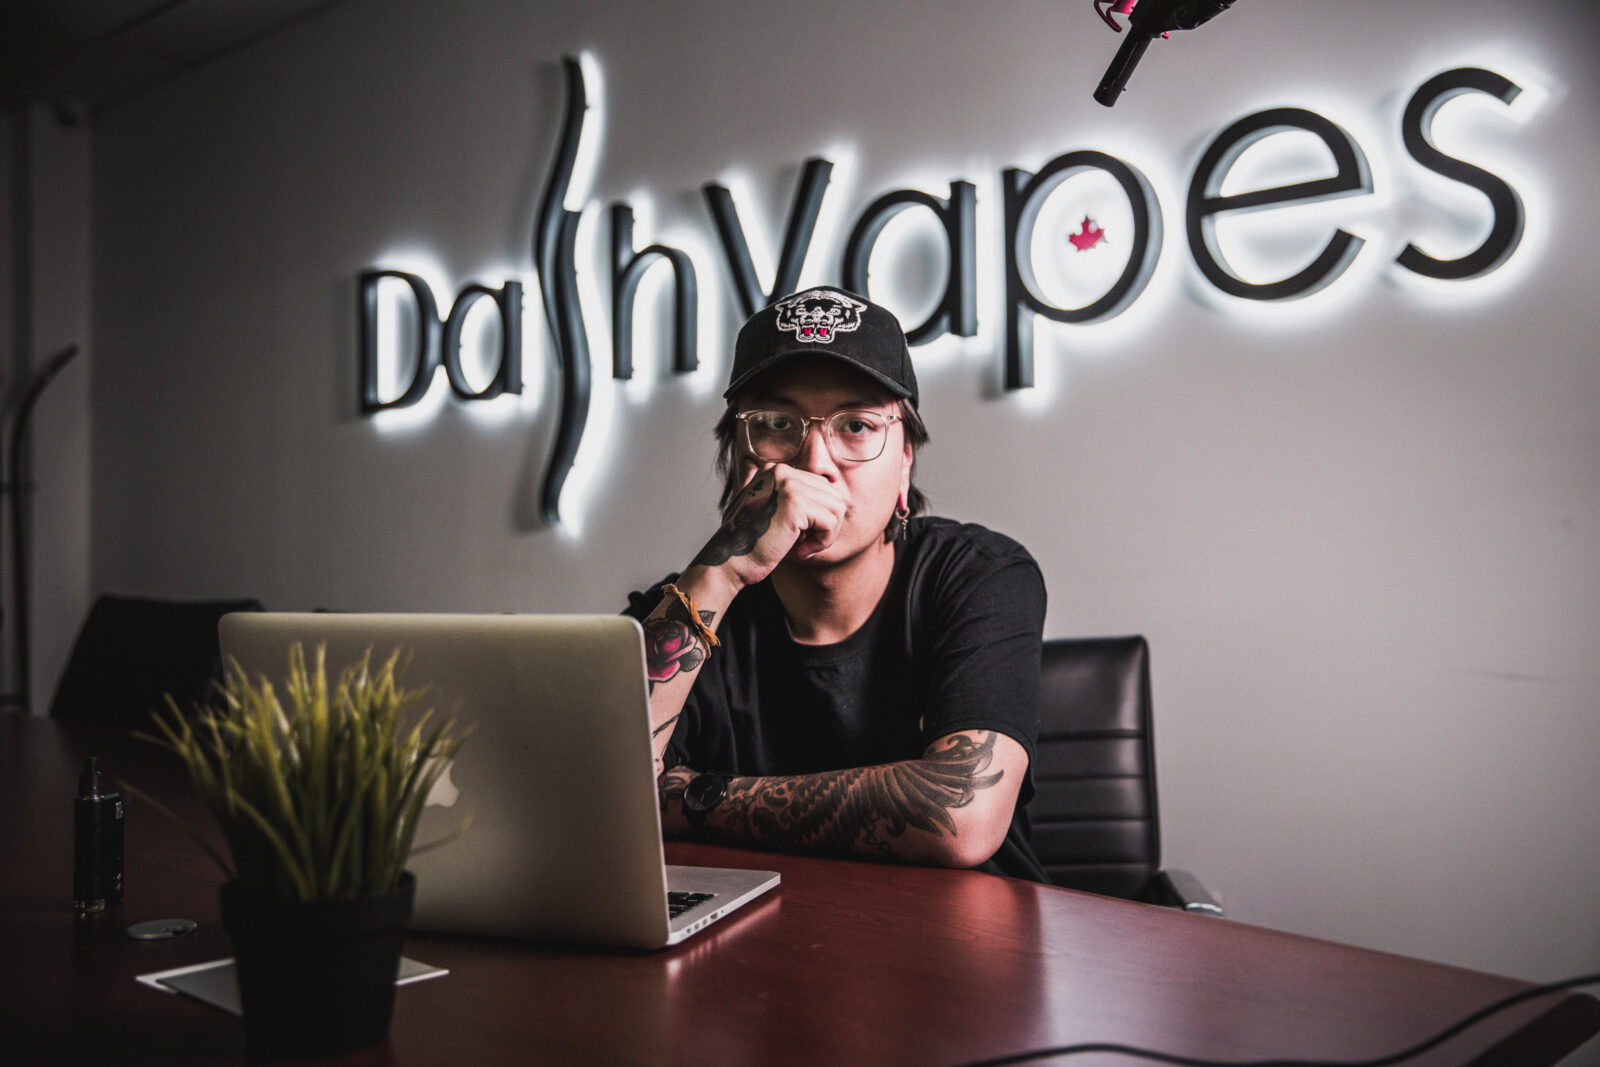 Interview With DashVapes.